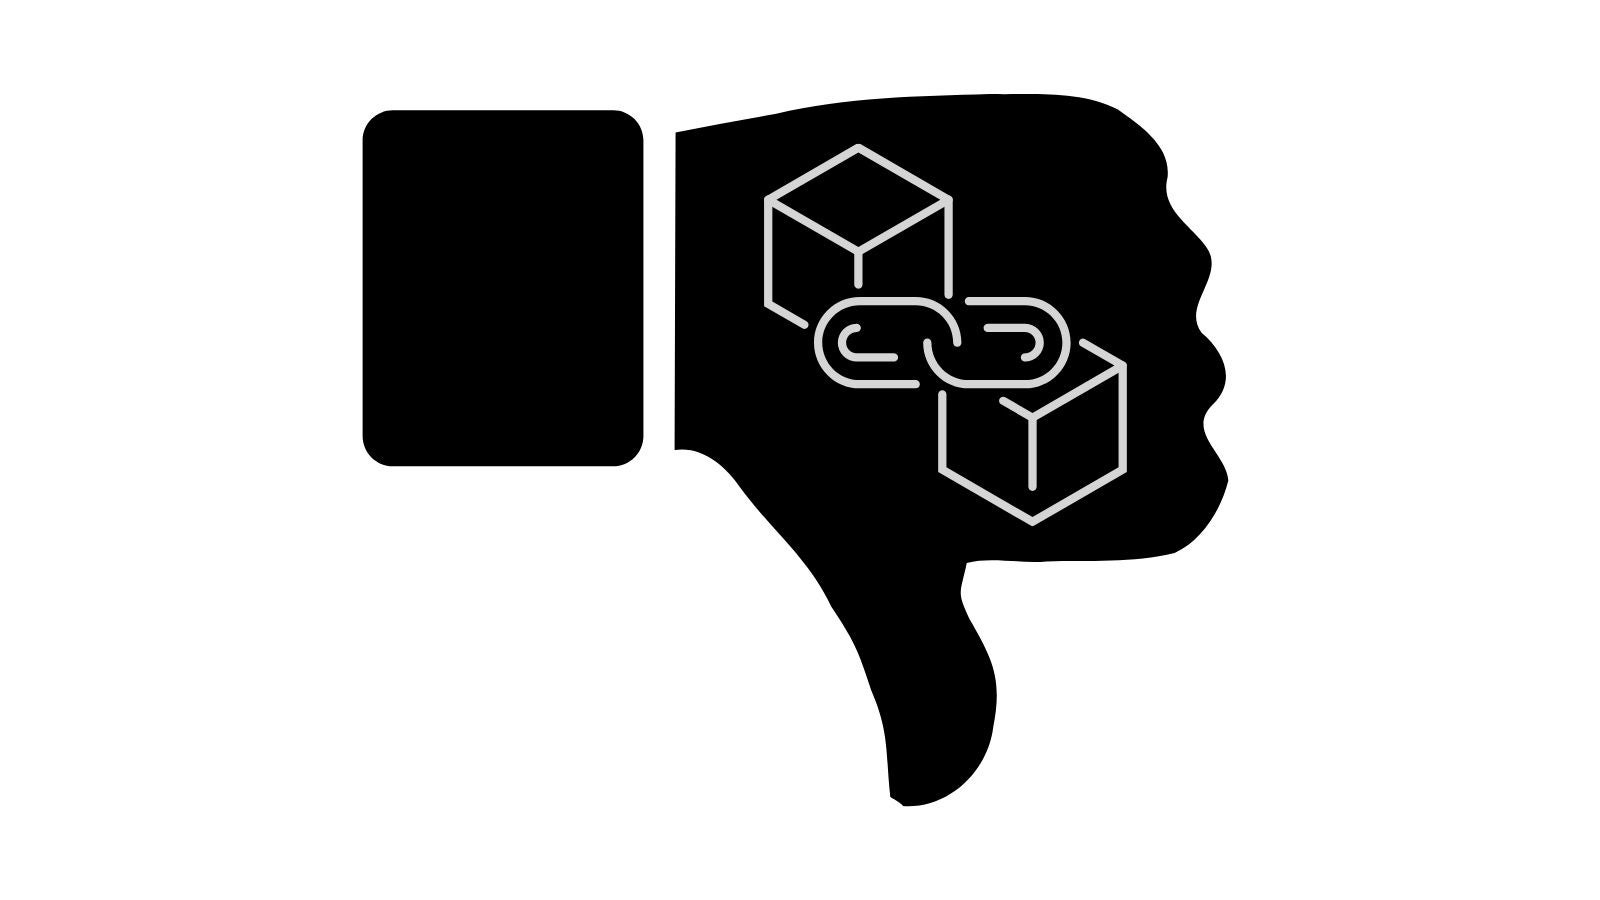 Cons of blockchain and decentralized storage